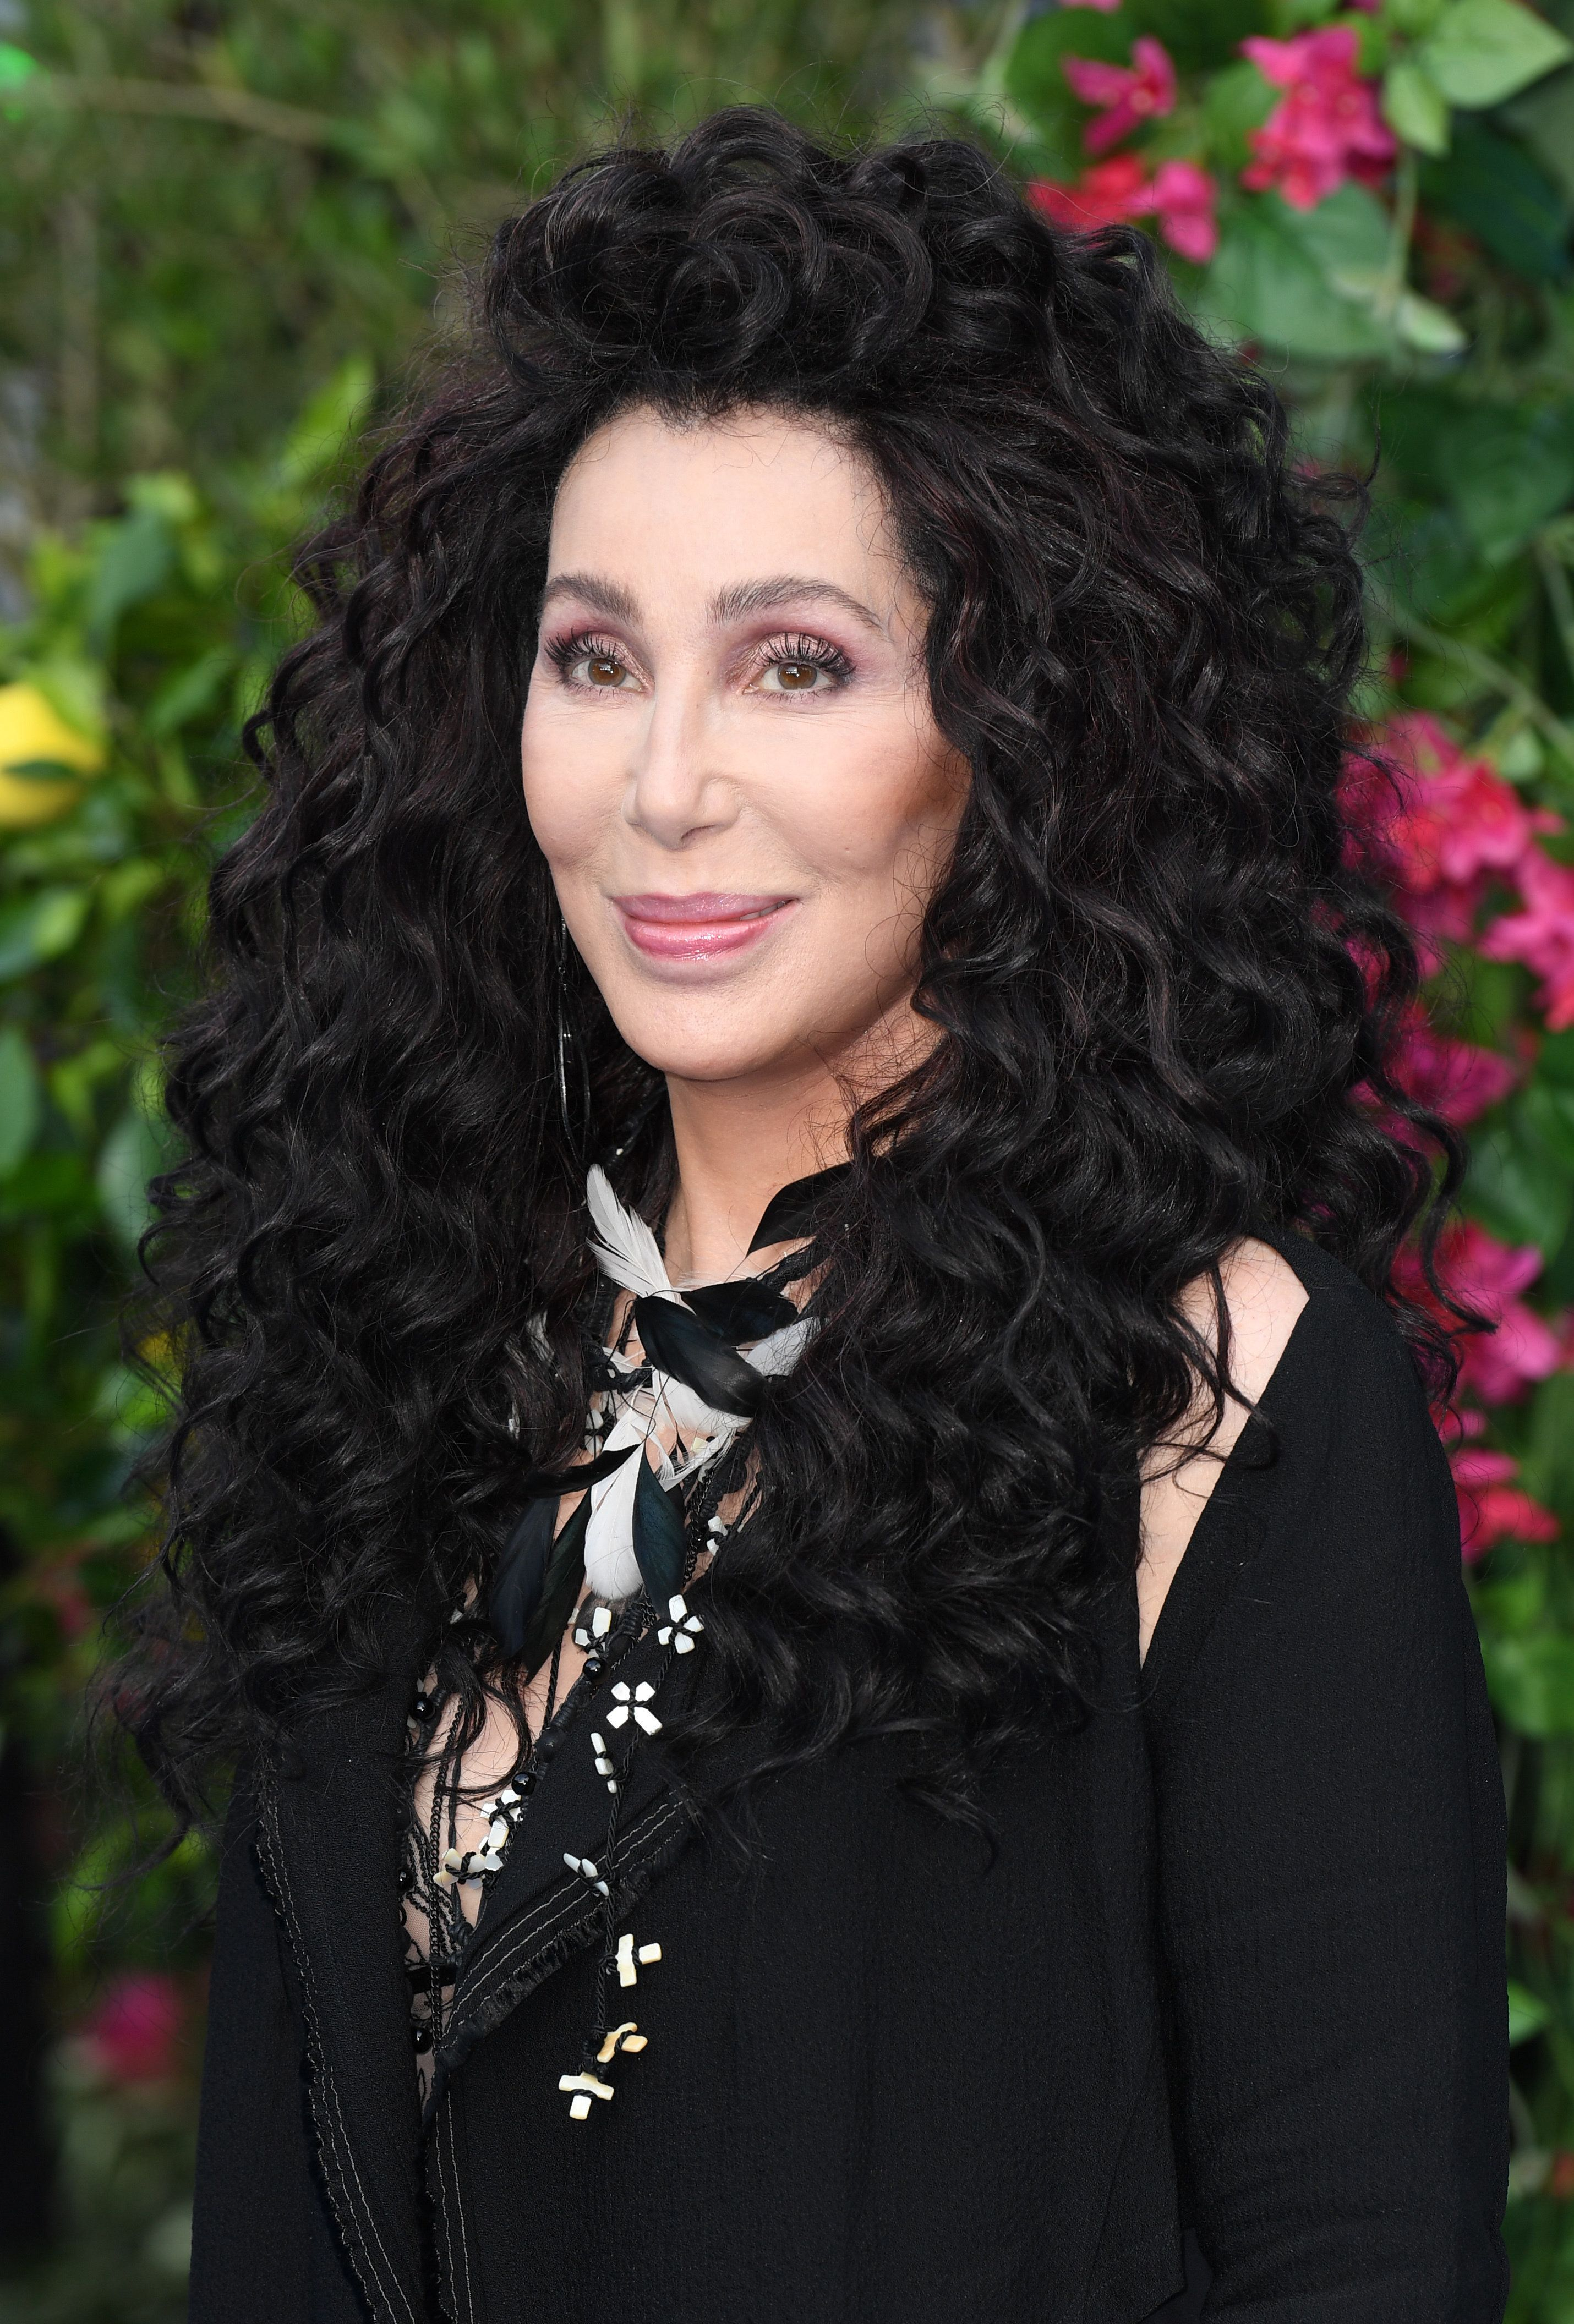 Cher Reveals ABBA Covers Album Details And Shares 'Gimme! Gimme! Gimme!'